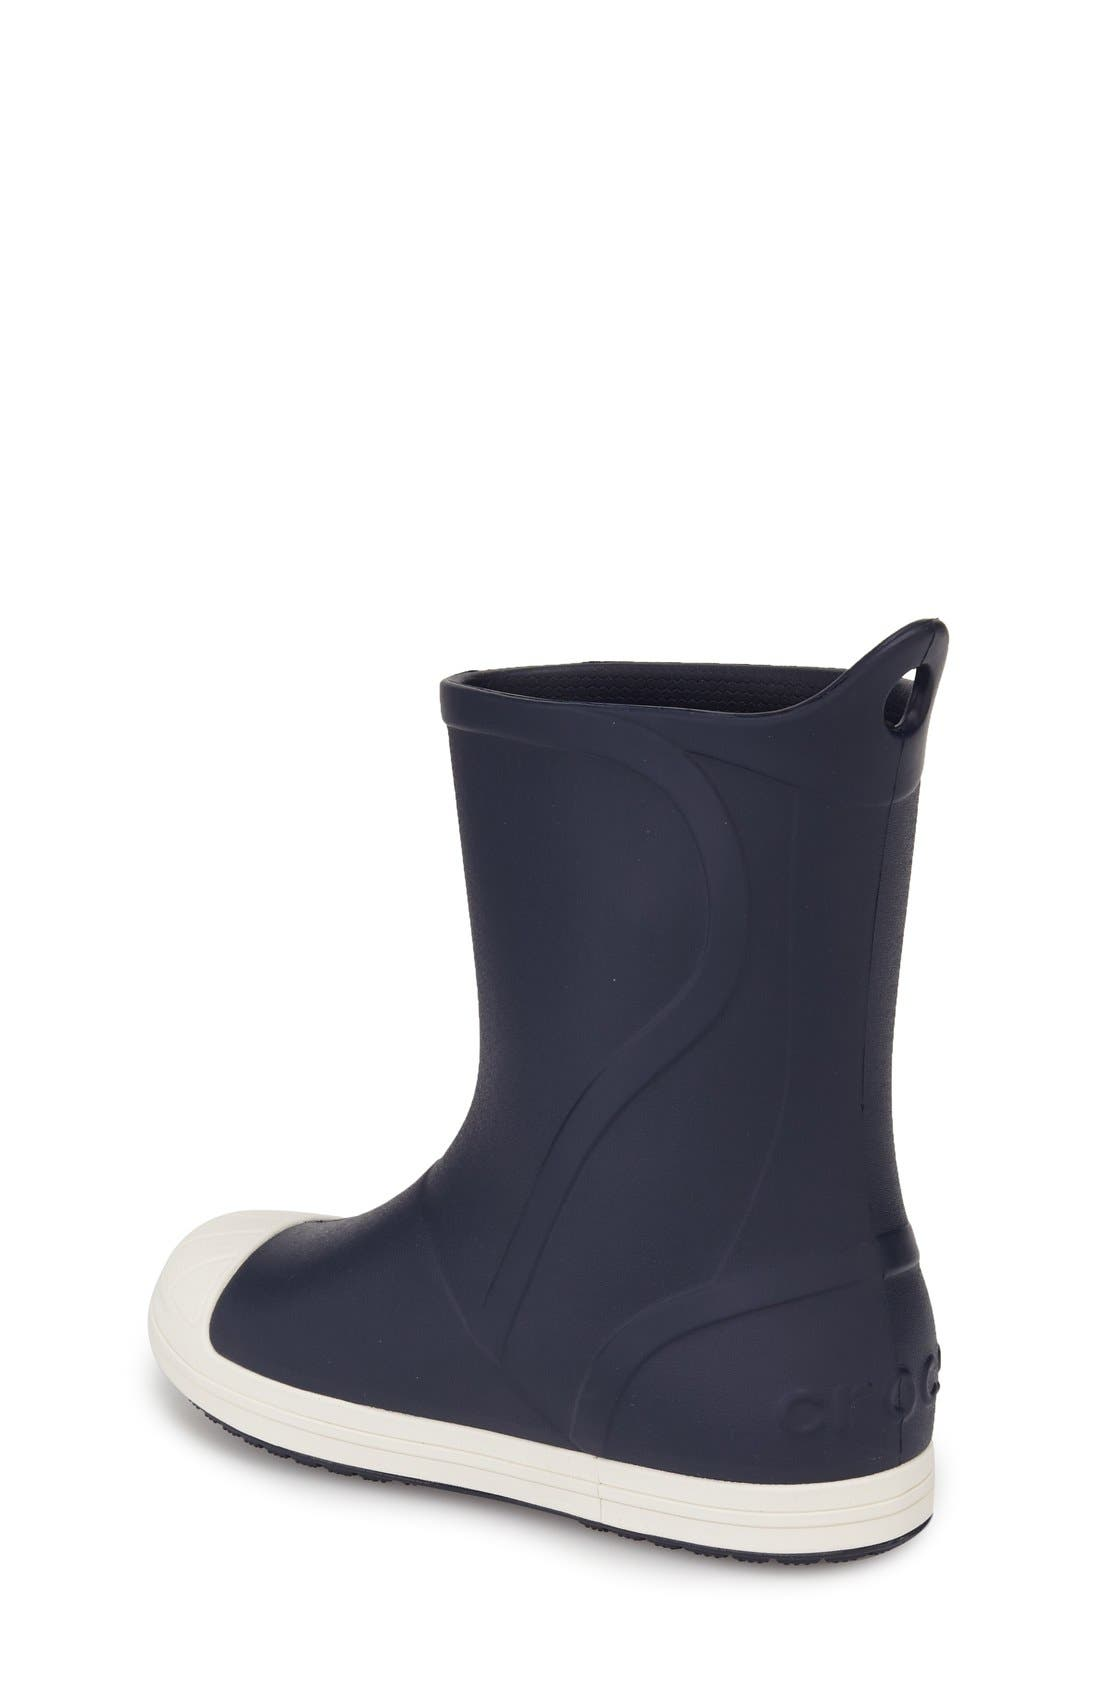 Alternate Image 2  - CROCS™ Bump It Waterproof Rain Boot (Walker, Toddler & Little Kid)